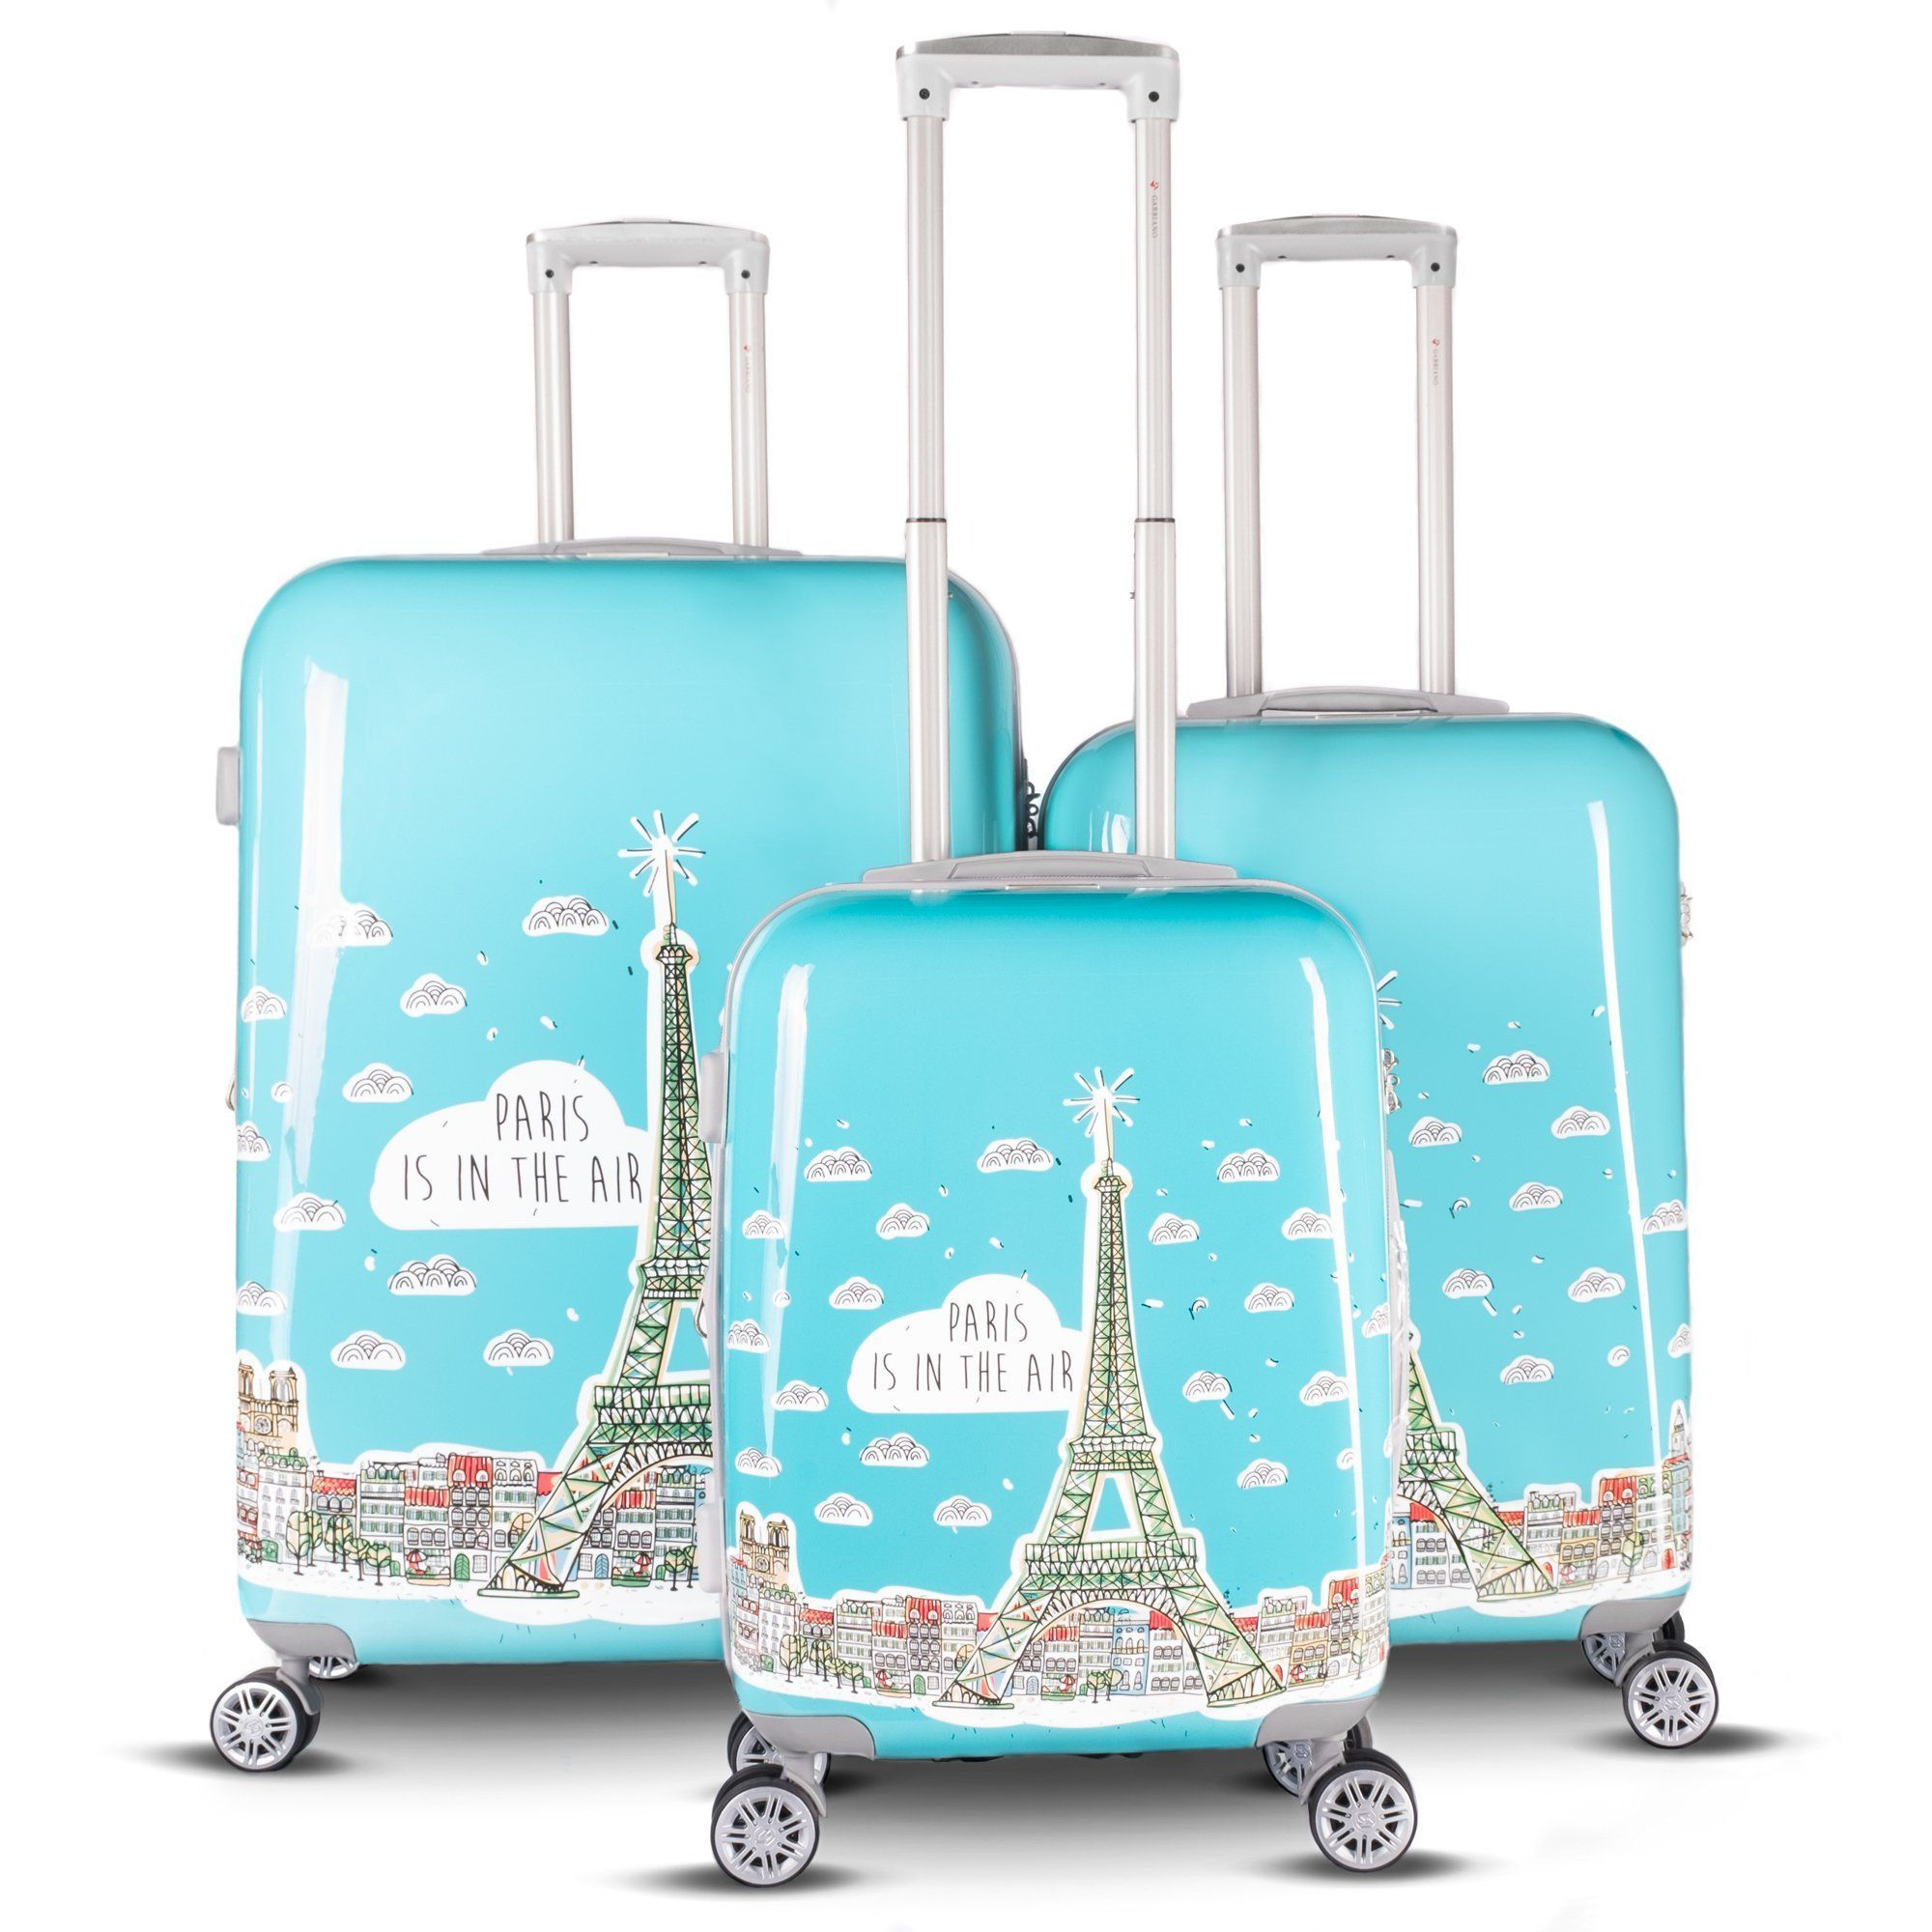 b98294b9c6f3 Gabbiano Luggage Paris Collection 3 Piece Expandable Hardside ...